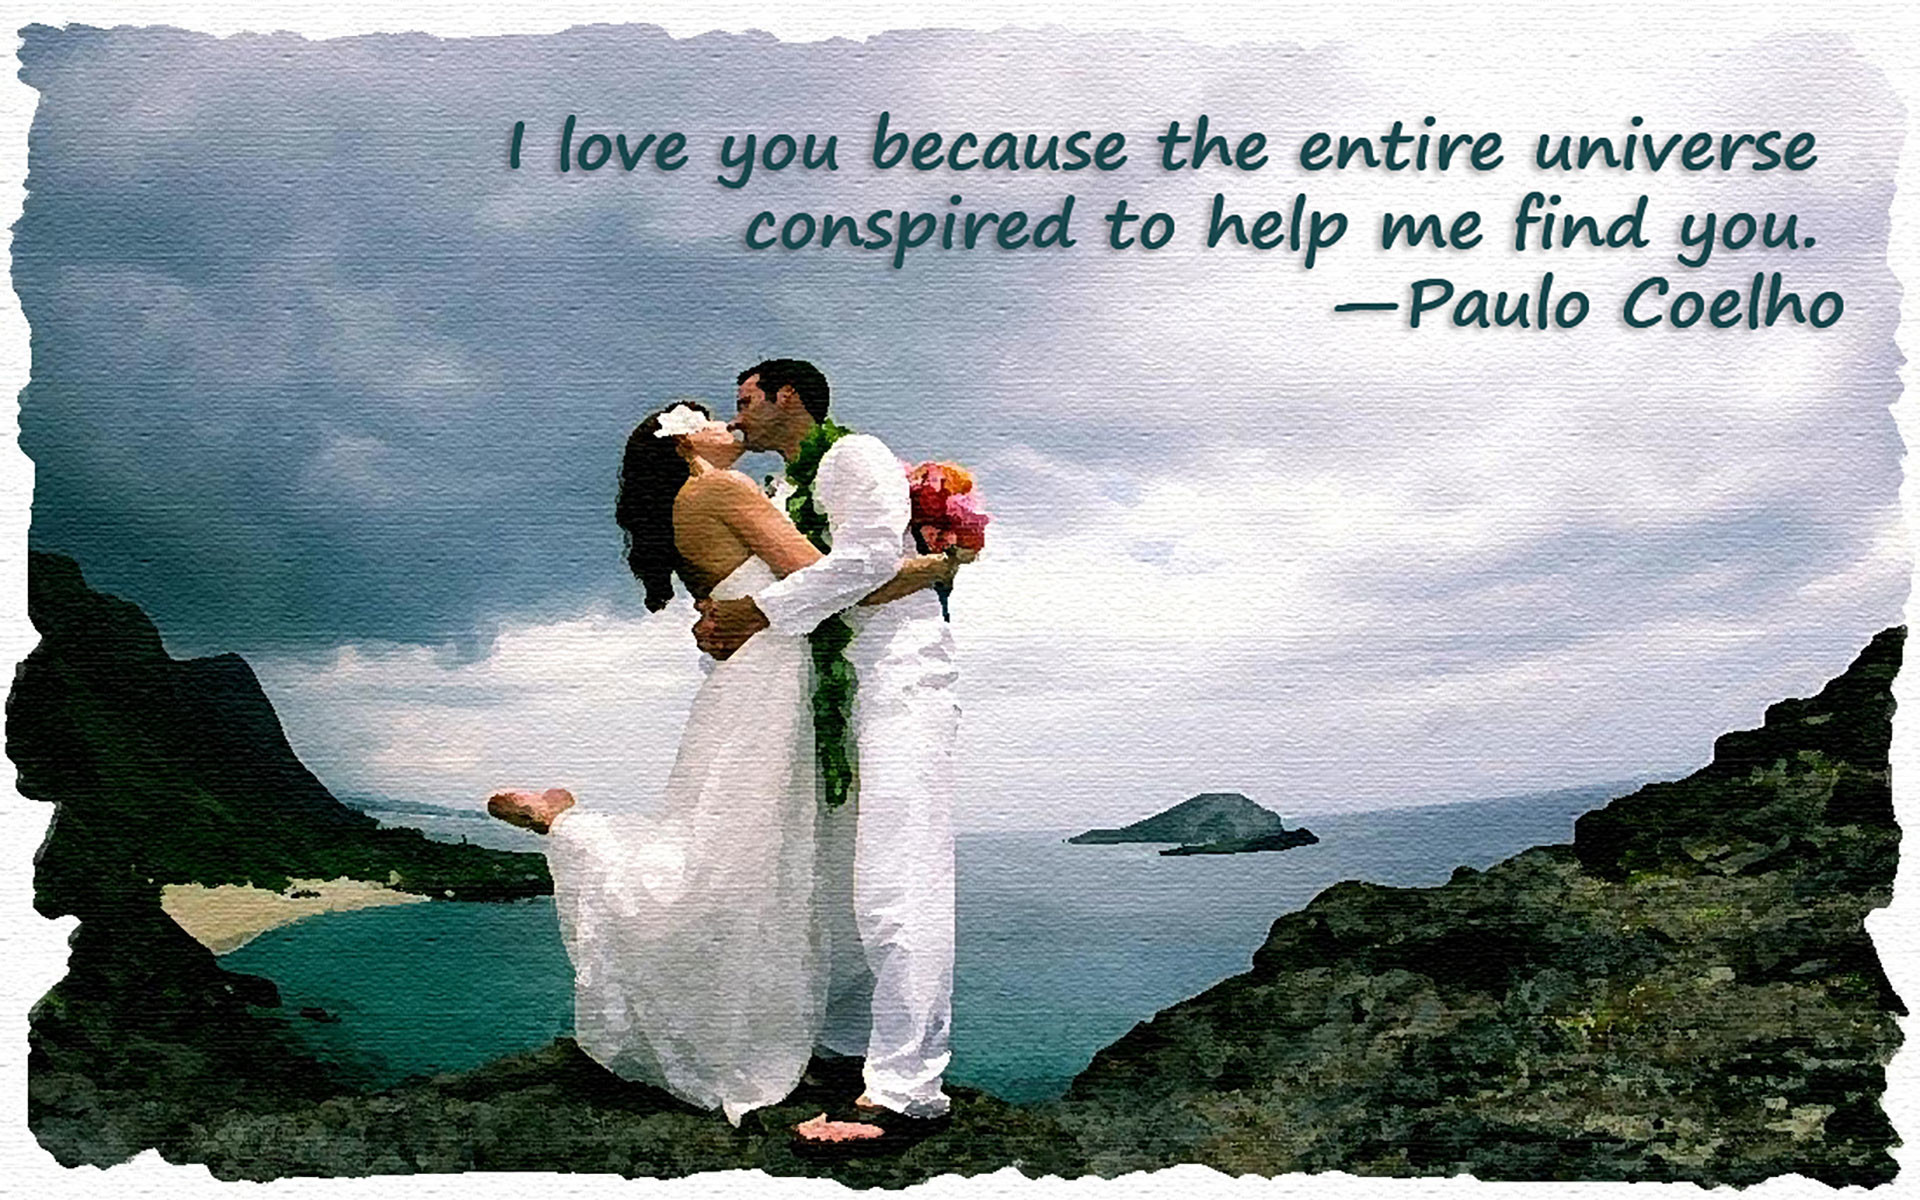 Romantic Couple Images With Quotes   Data Src Cute - Cute Couple Hd Wallpapers With Quotes - HD Wallpaper